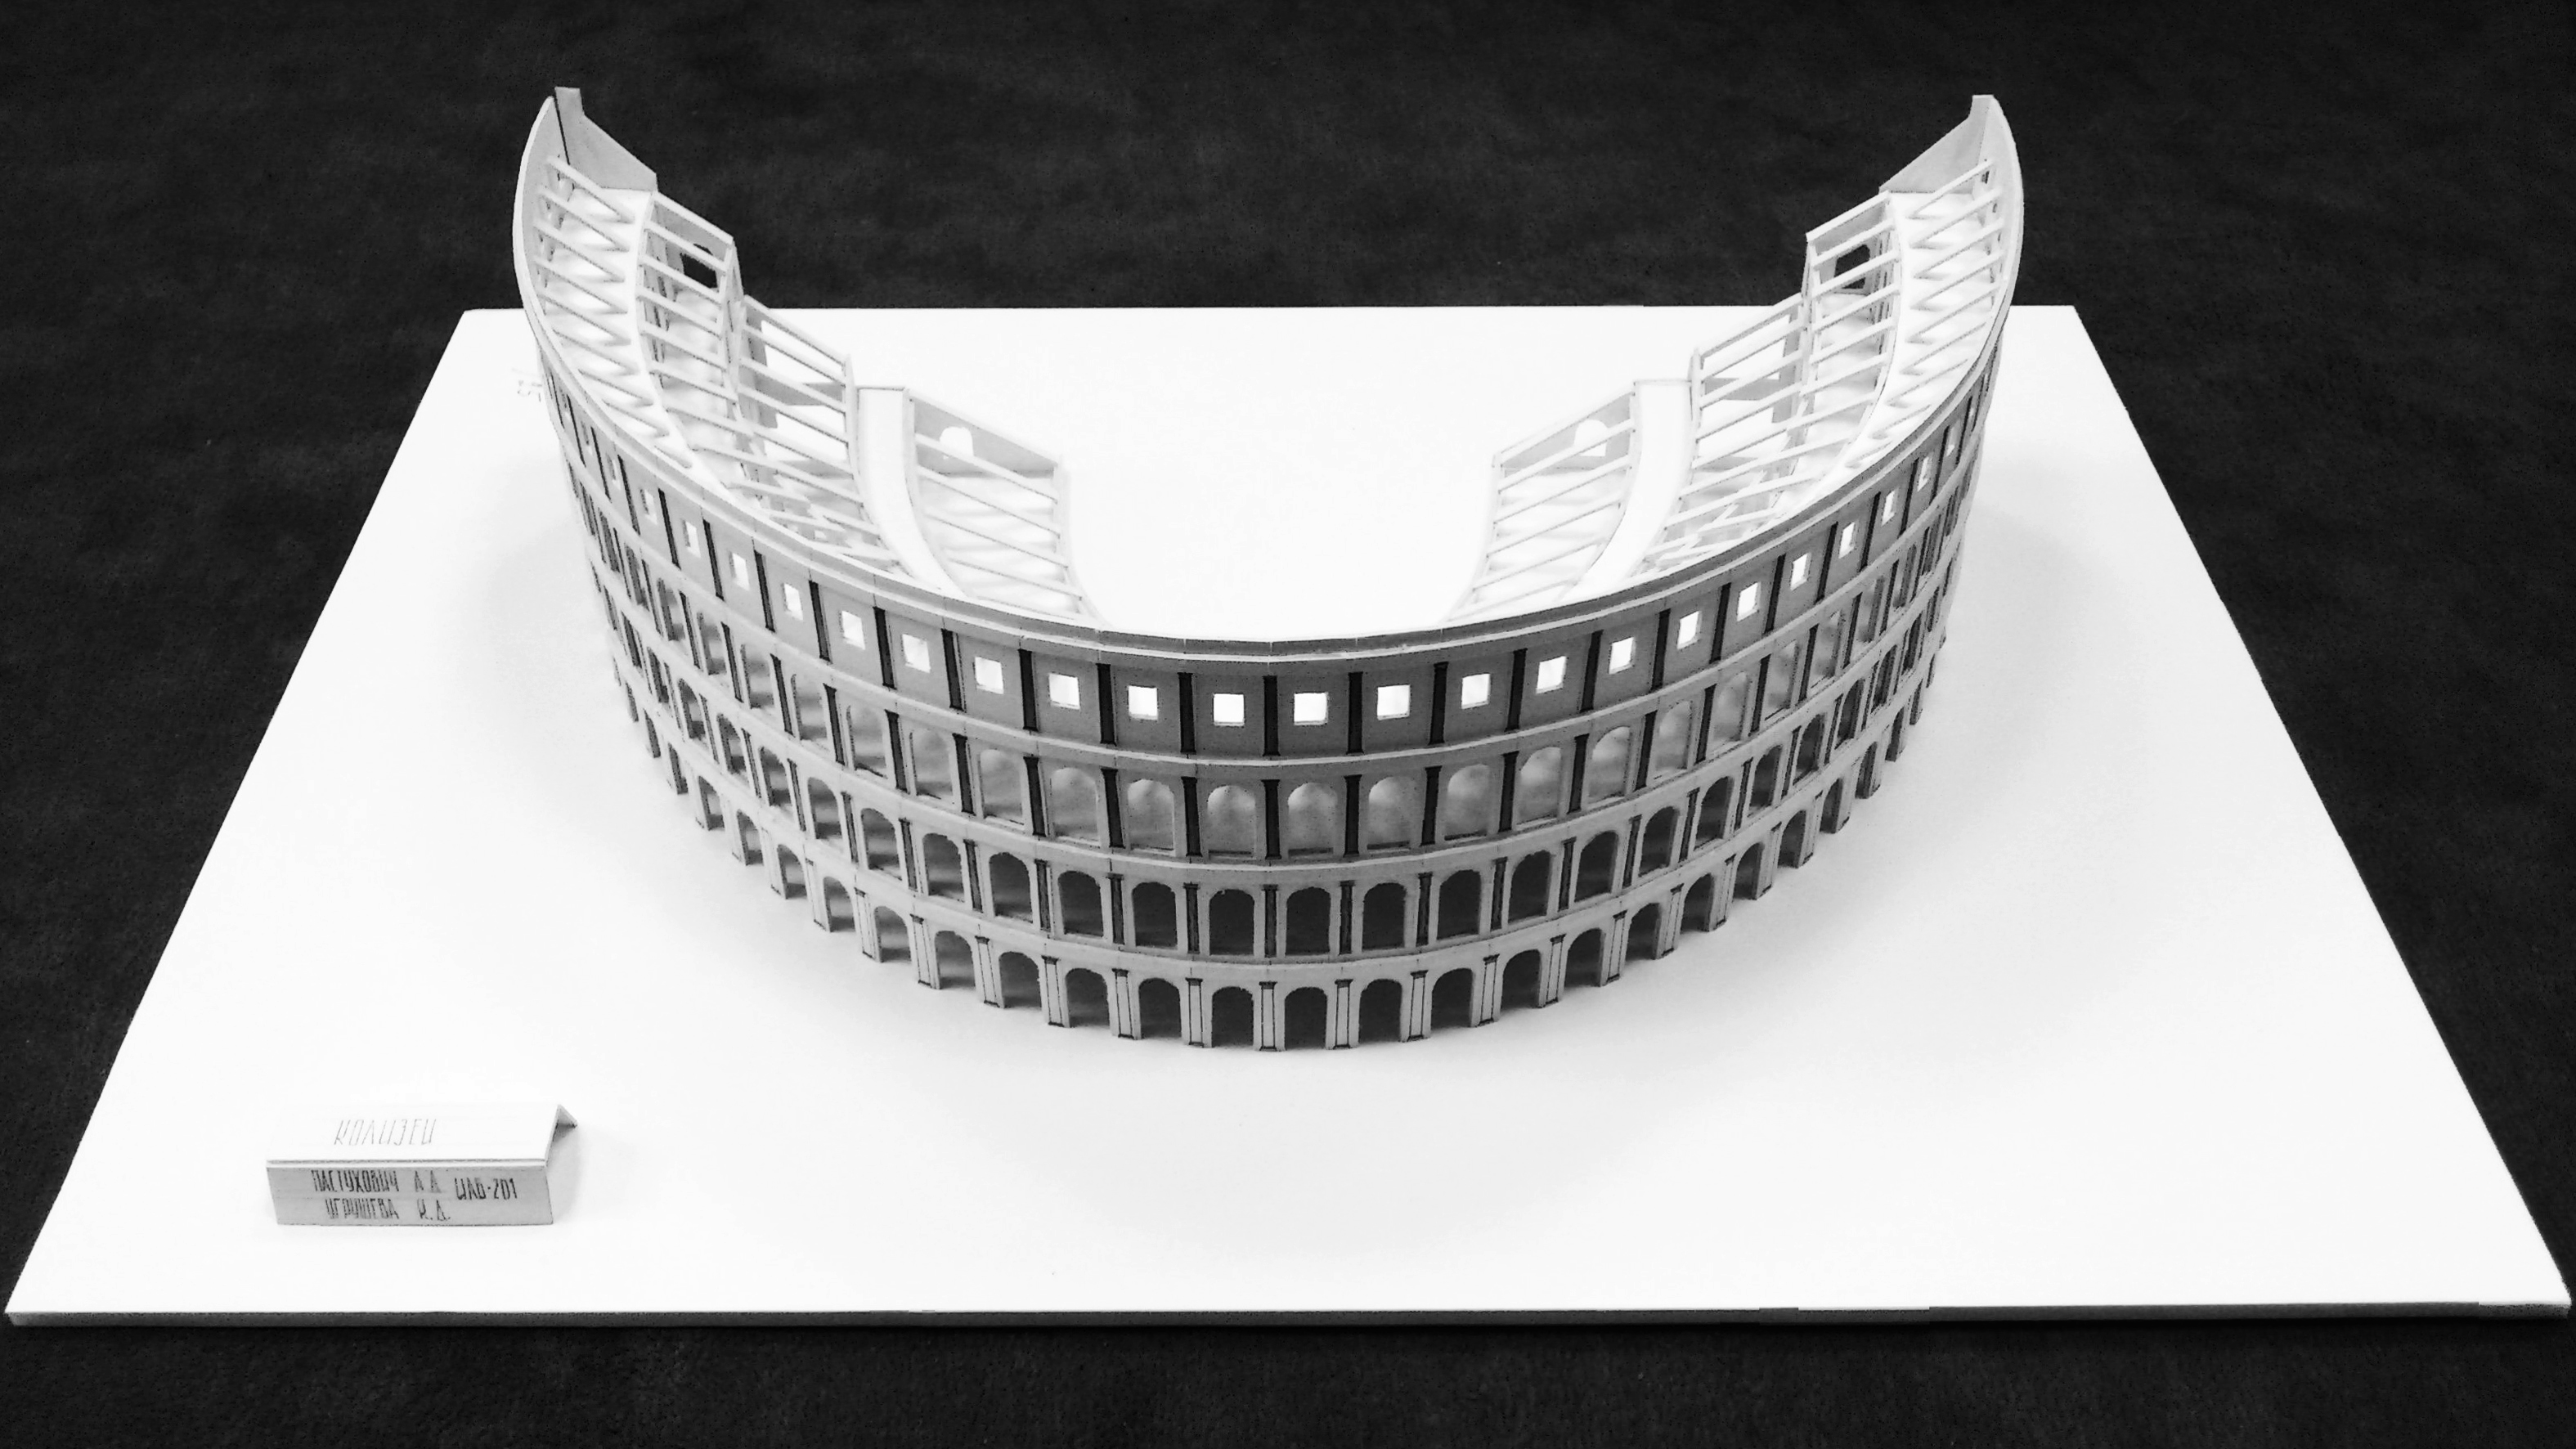 Model: Colosseum 1